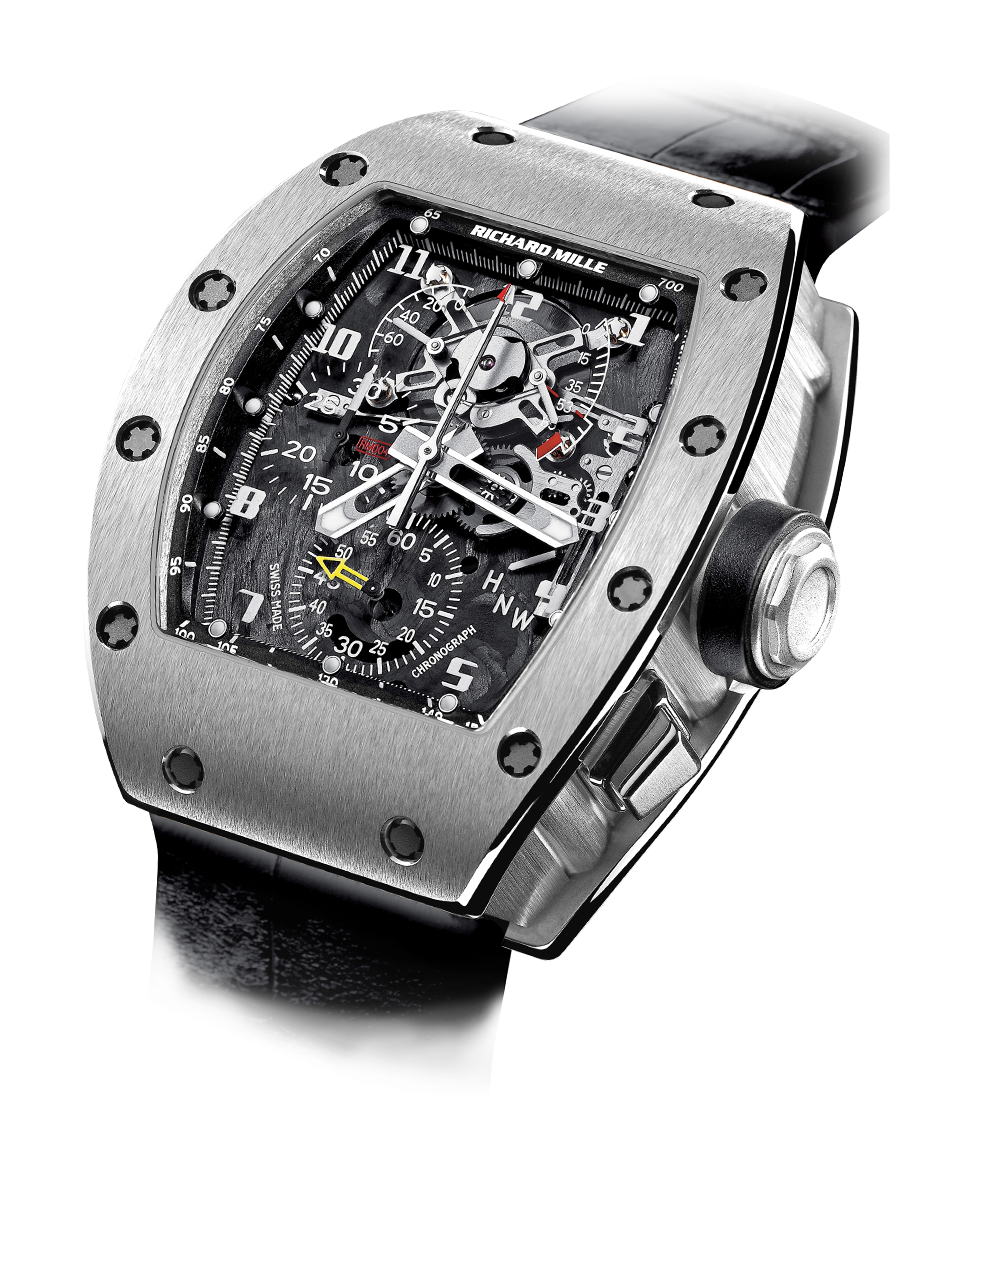 Rm 004-split seconds chronograph - felipe massa